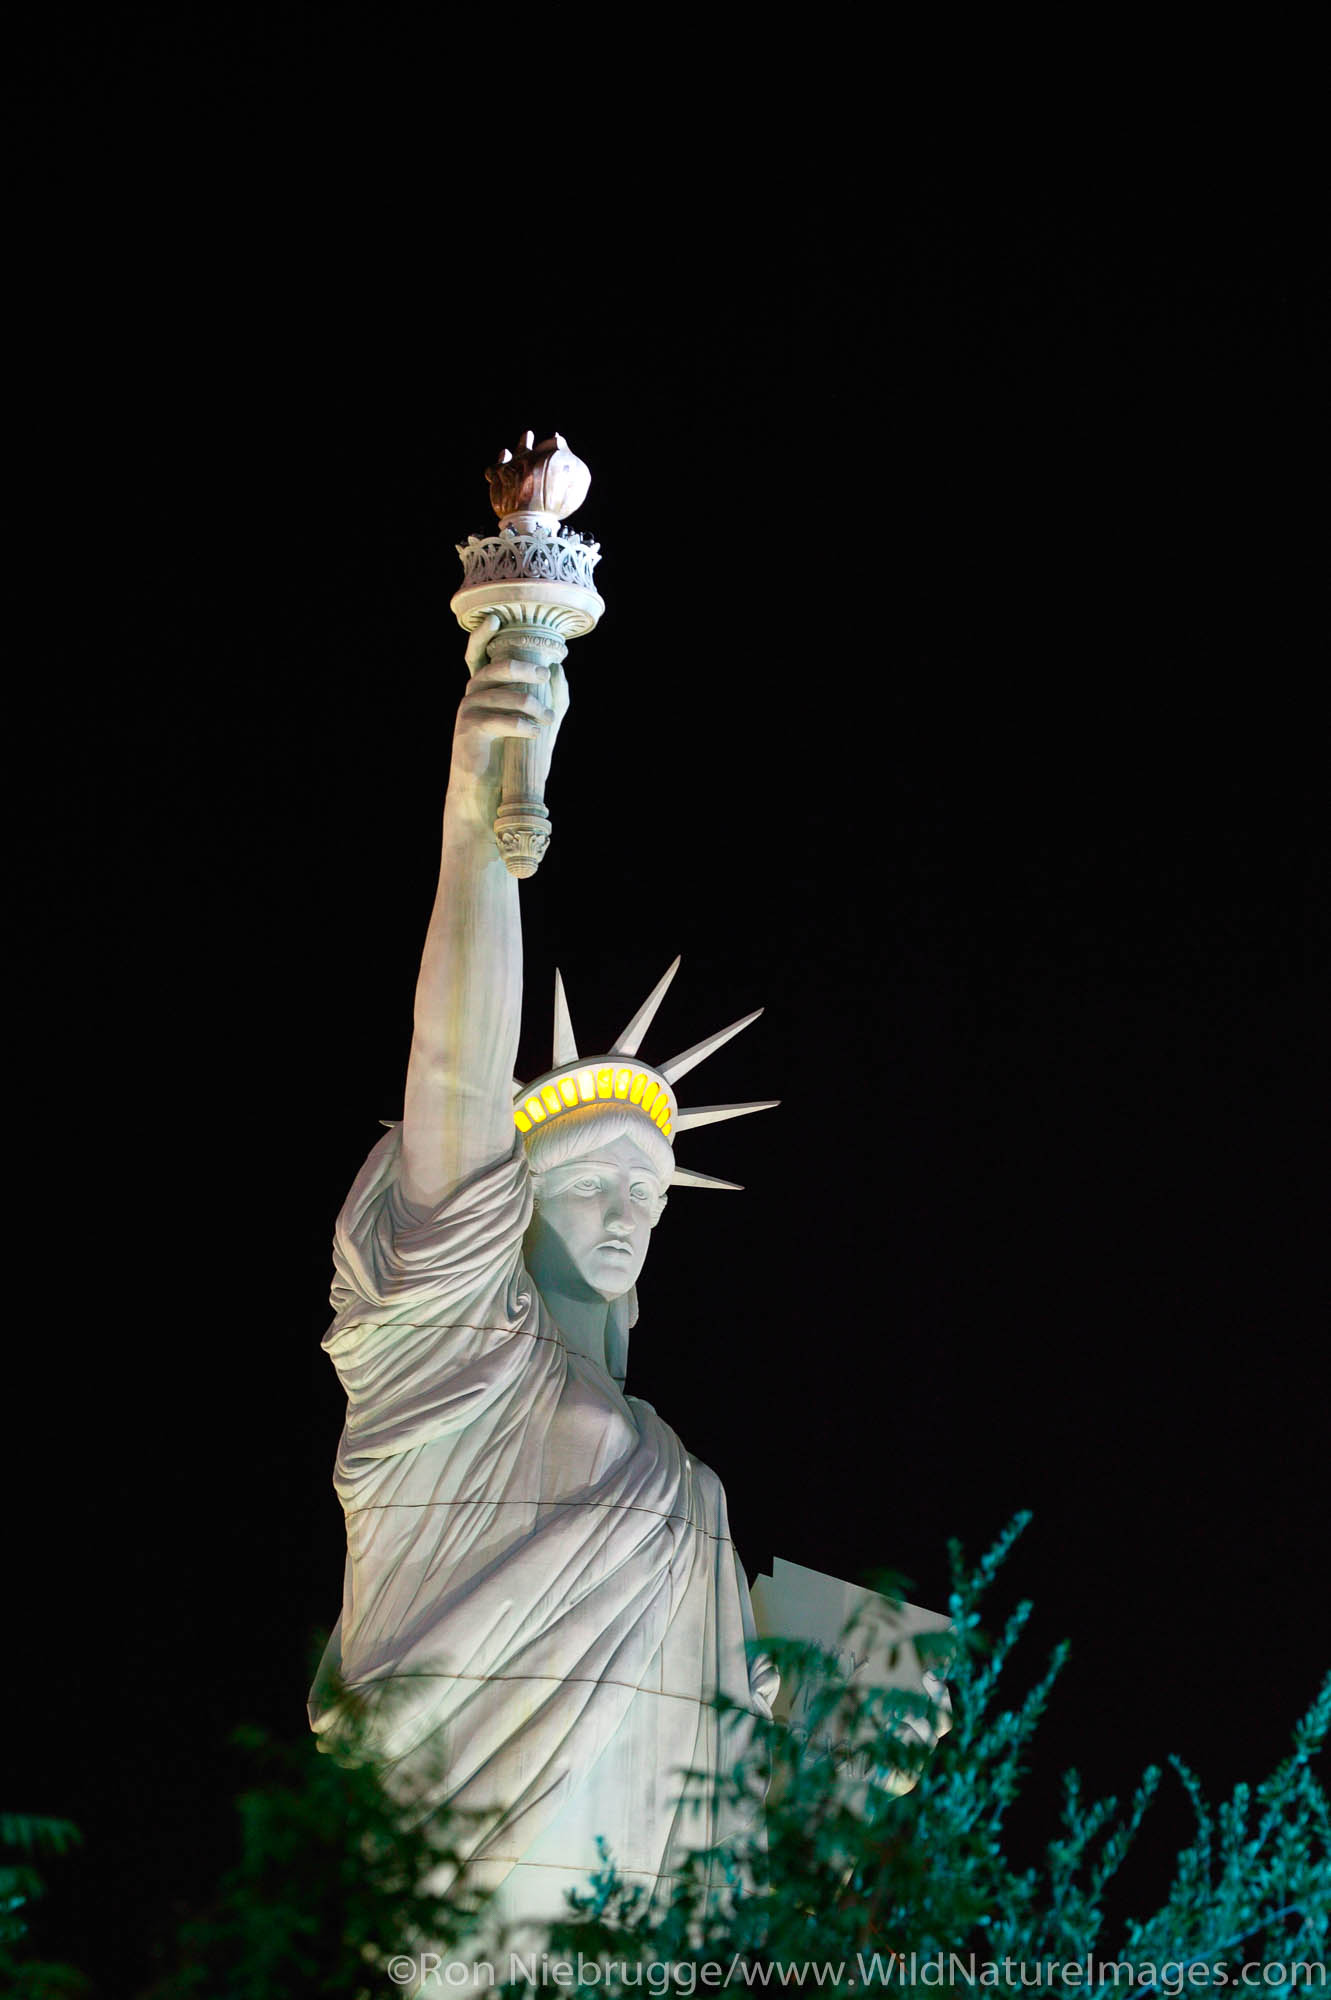 Statue of of Liberty in front of the New York New York Hotel and Casino in Las Vegas, Nevada.